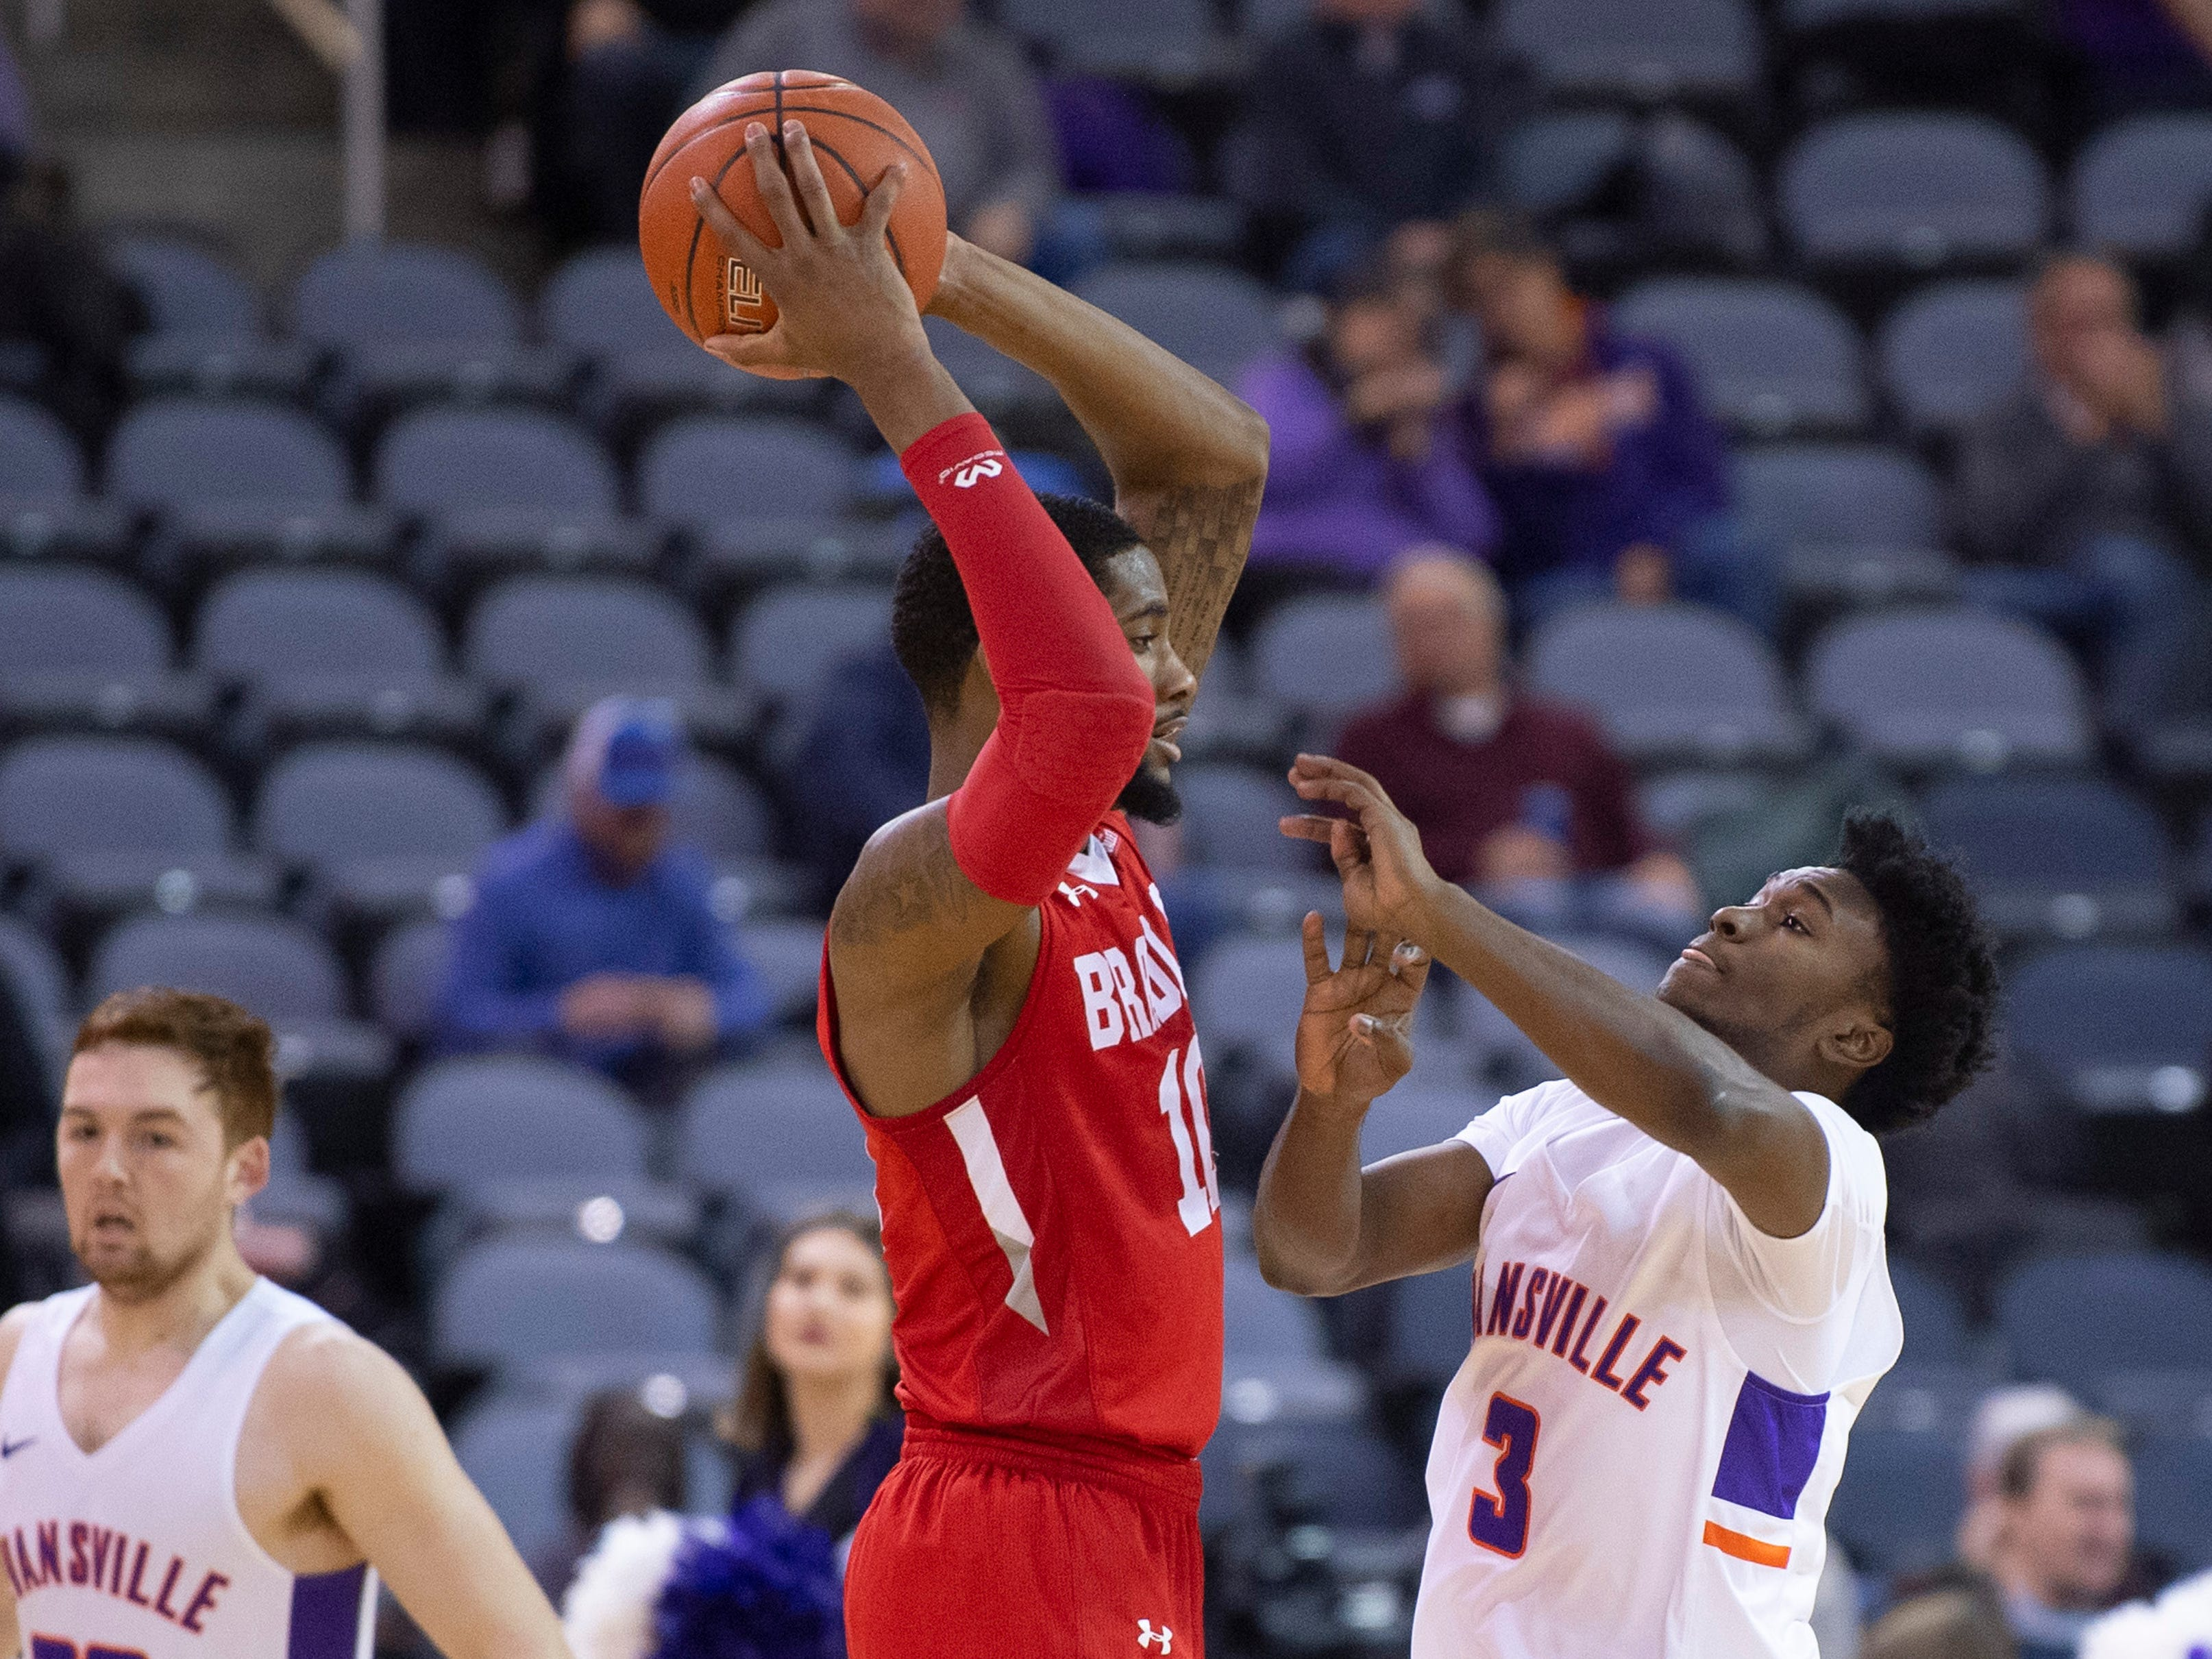 Bradley's Elijah Childs (10) is guarded by Evansville's Jawaun Newton (3) during their game at the Ford Center Wednesday night.